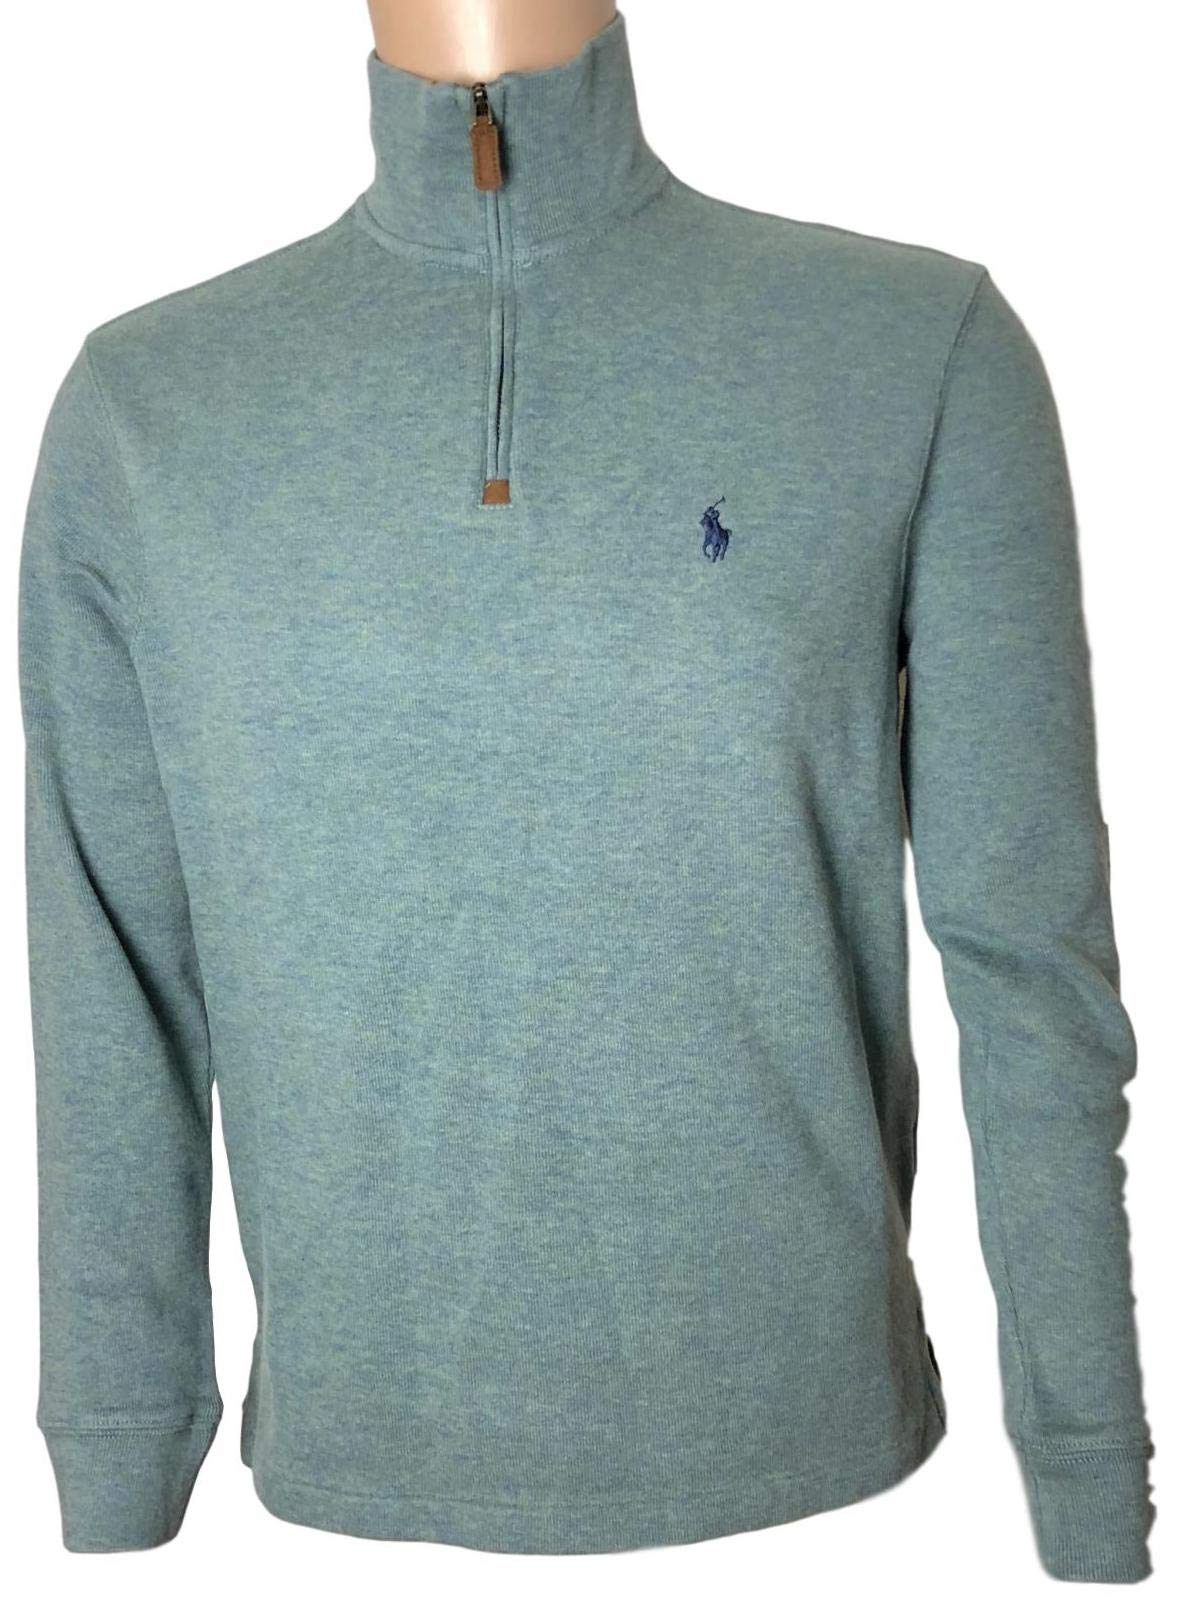 870965a8b7a Galleon - Polo Ralph Lauren Mens Half Zip French Rib Cotton Sweater  (X-Large